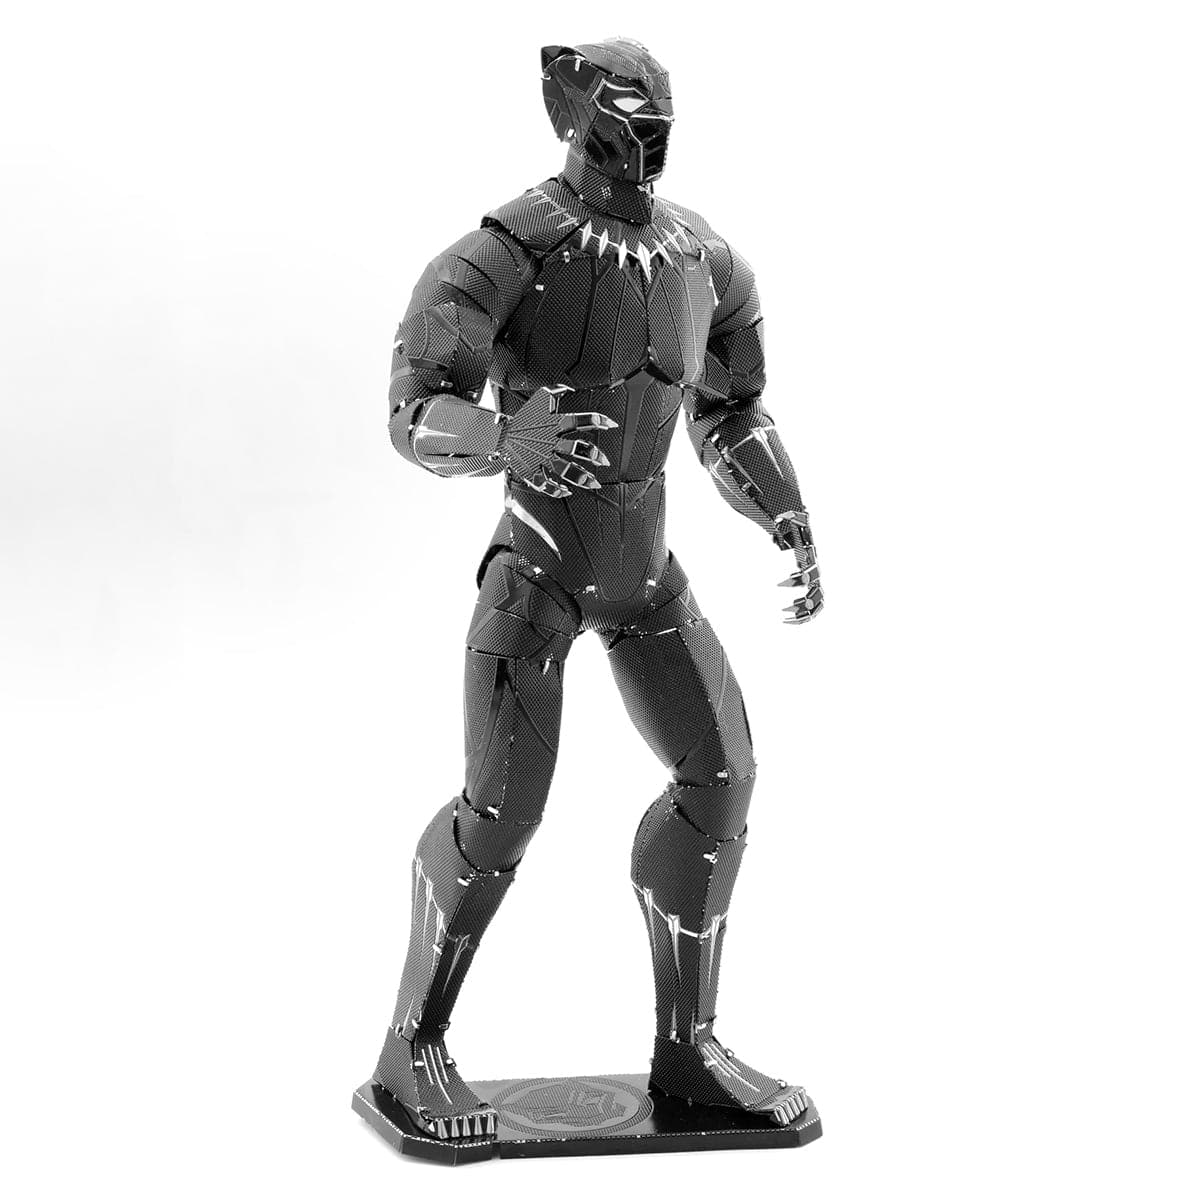 Fascinations Metal Earth - Marvel Avengers - Black Panther - Legacy Toys